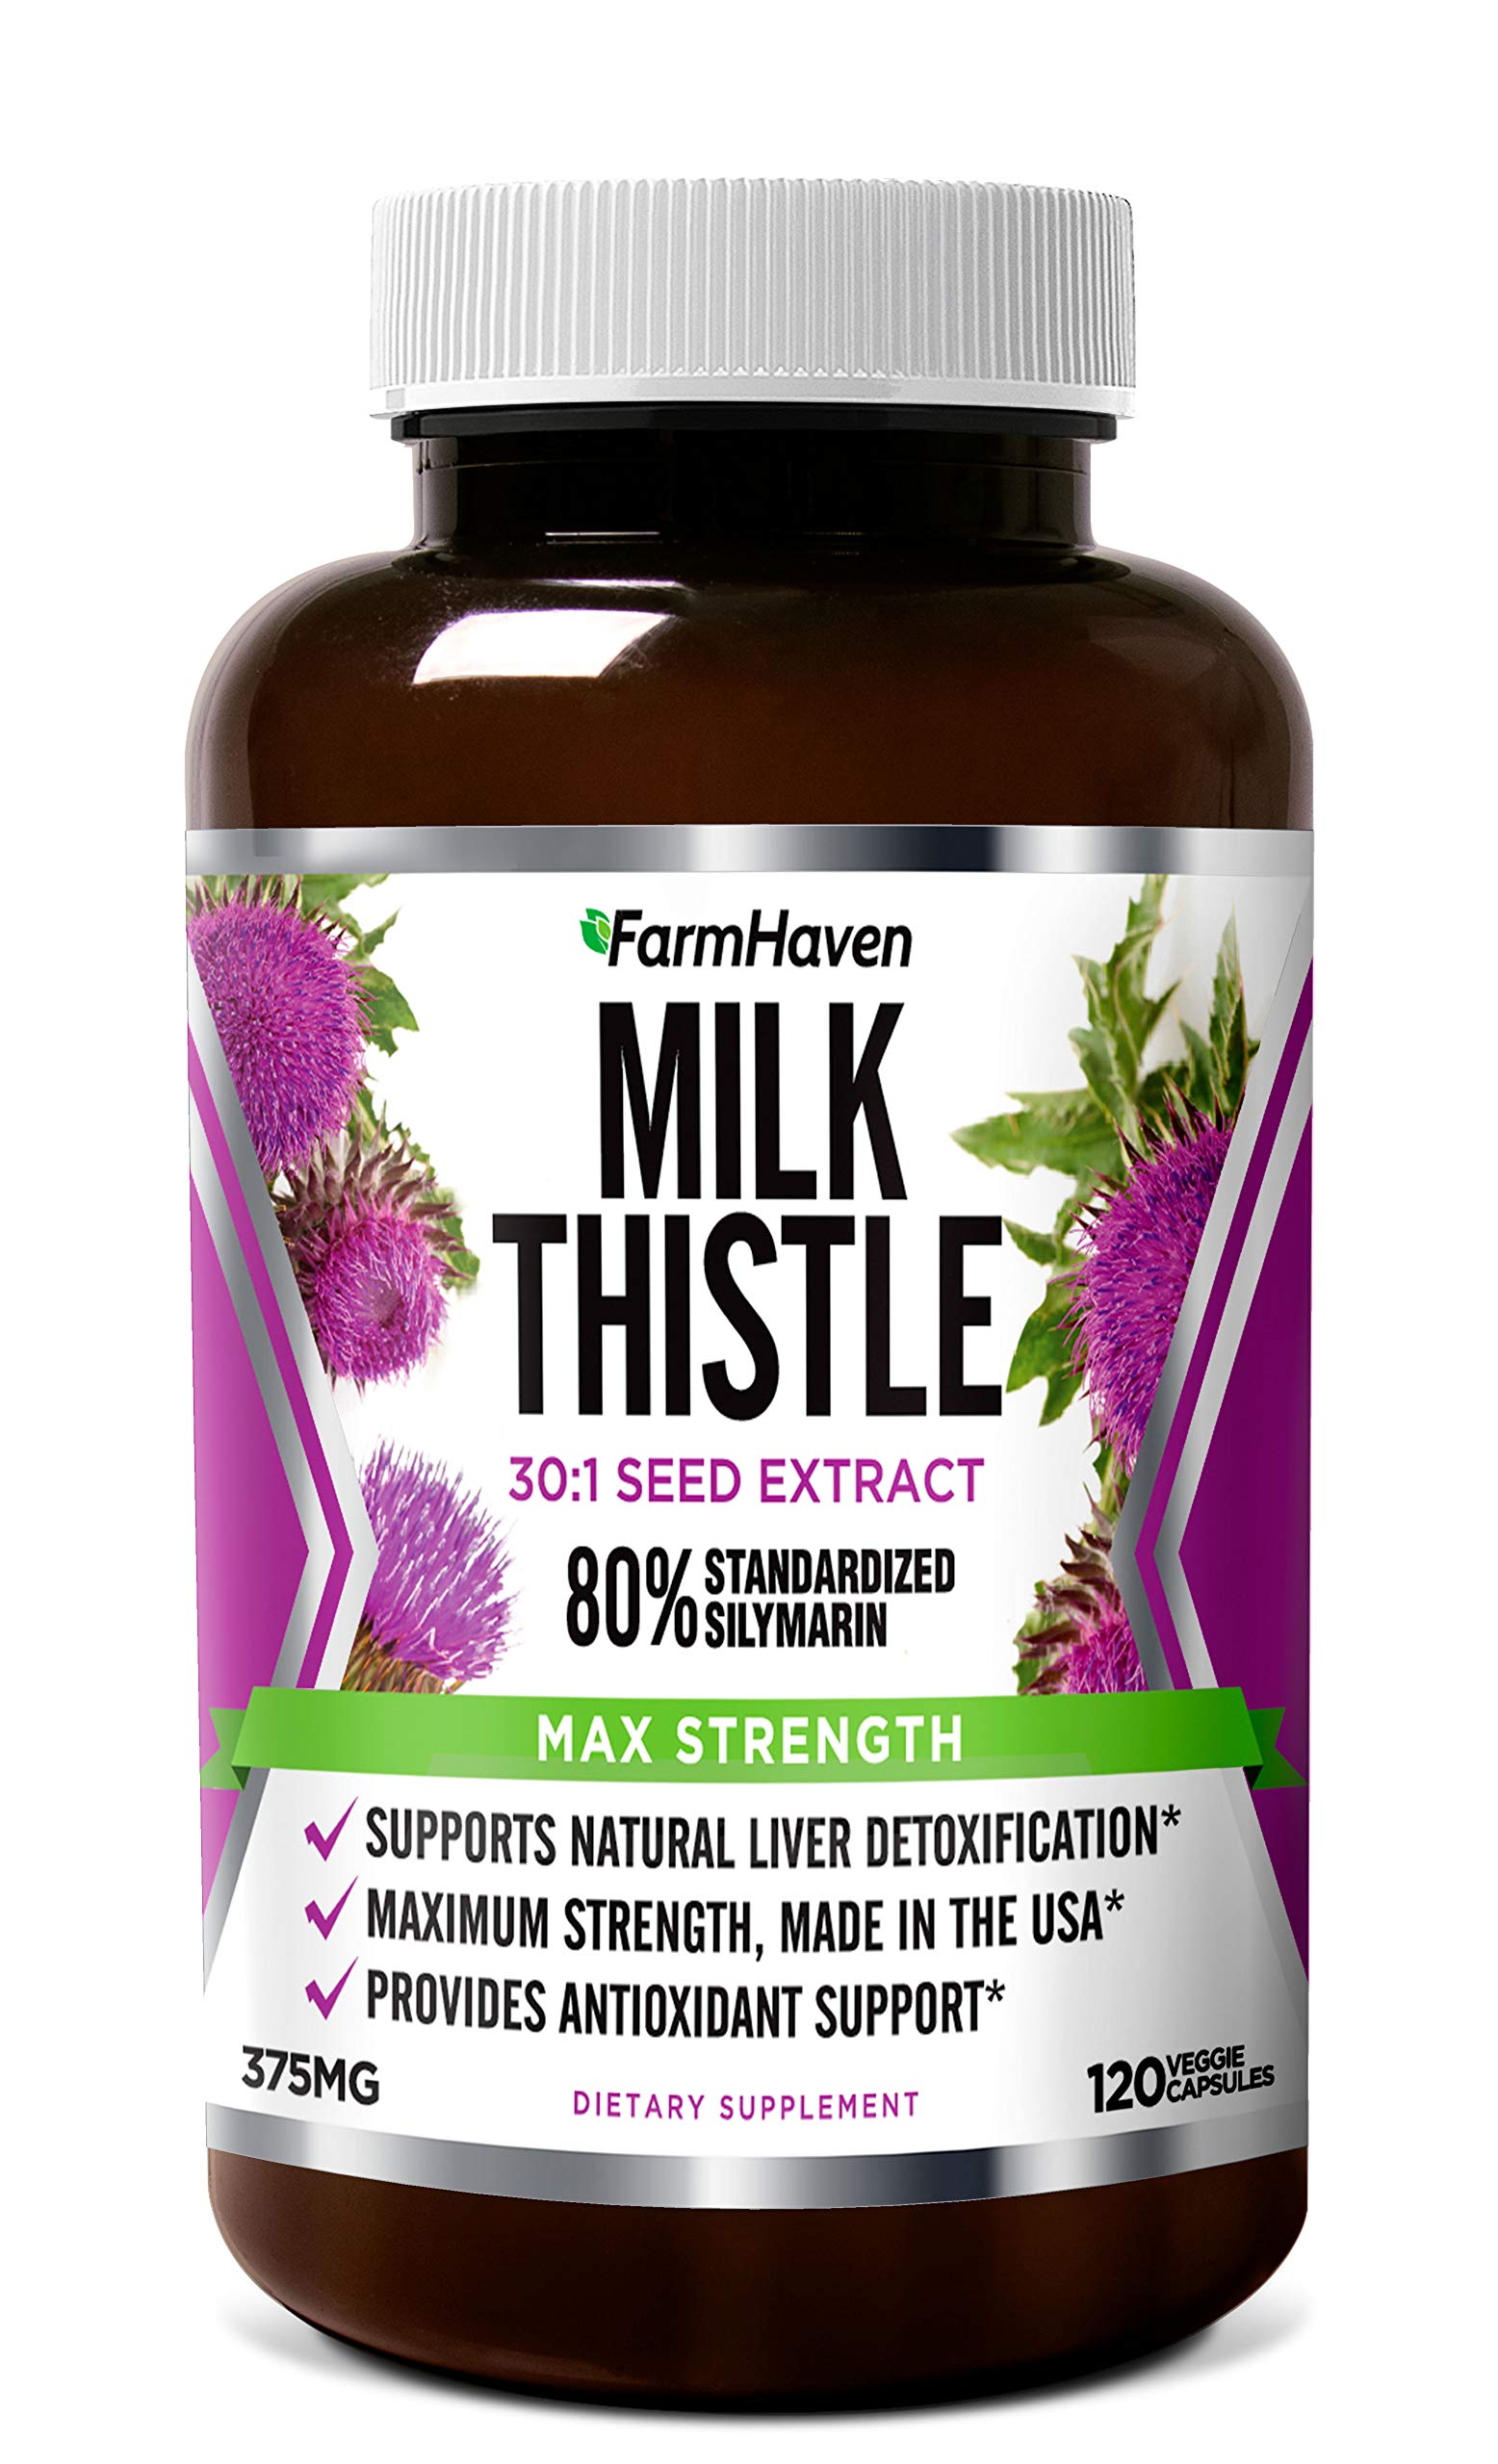 FarmHaven Milk Thistle Capsules | 11250mg Strength | 30X Concentrated Seed Extract & 80% Silymarin Standardized - Supports Liver Function and Overall Health | Non-GMO | 120 Veggie Capsules by FarmHaven